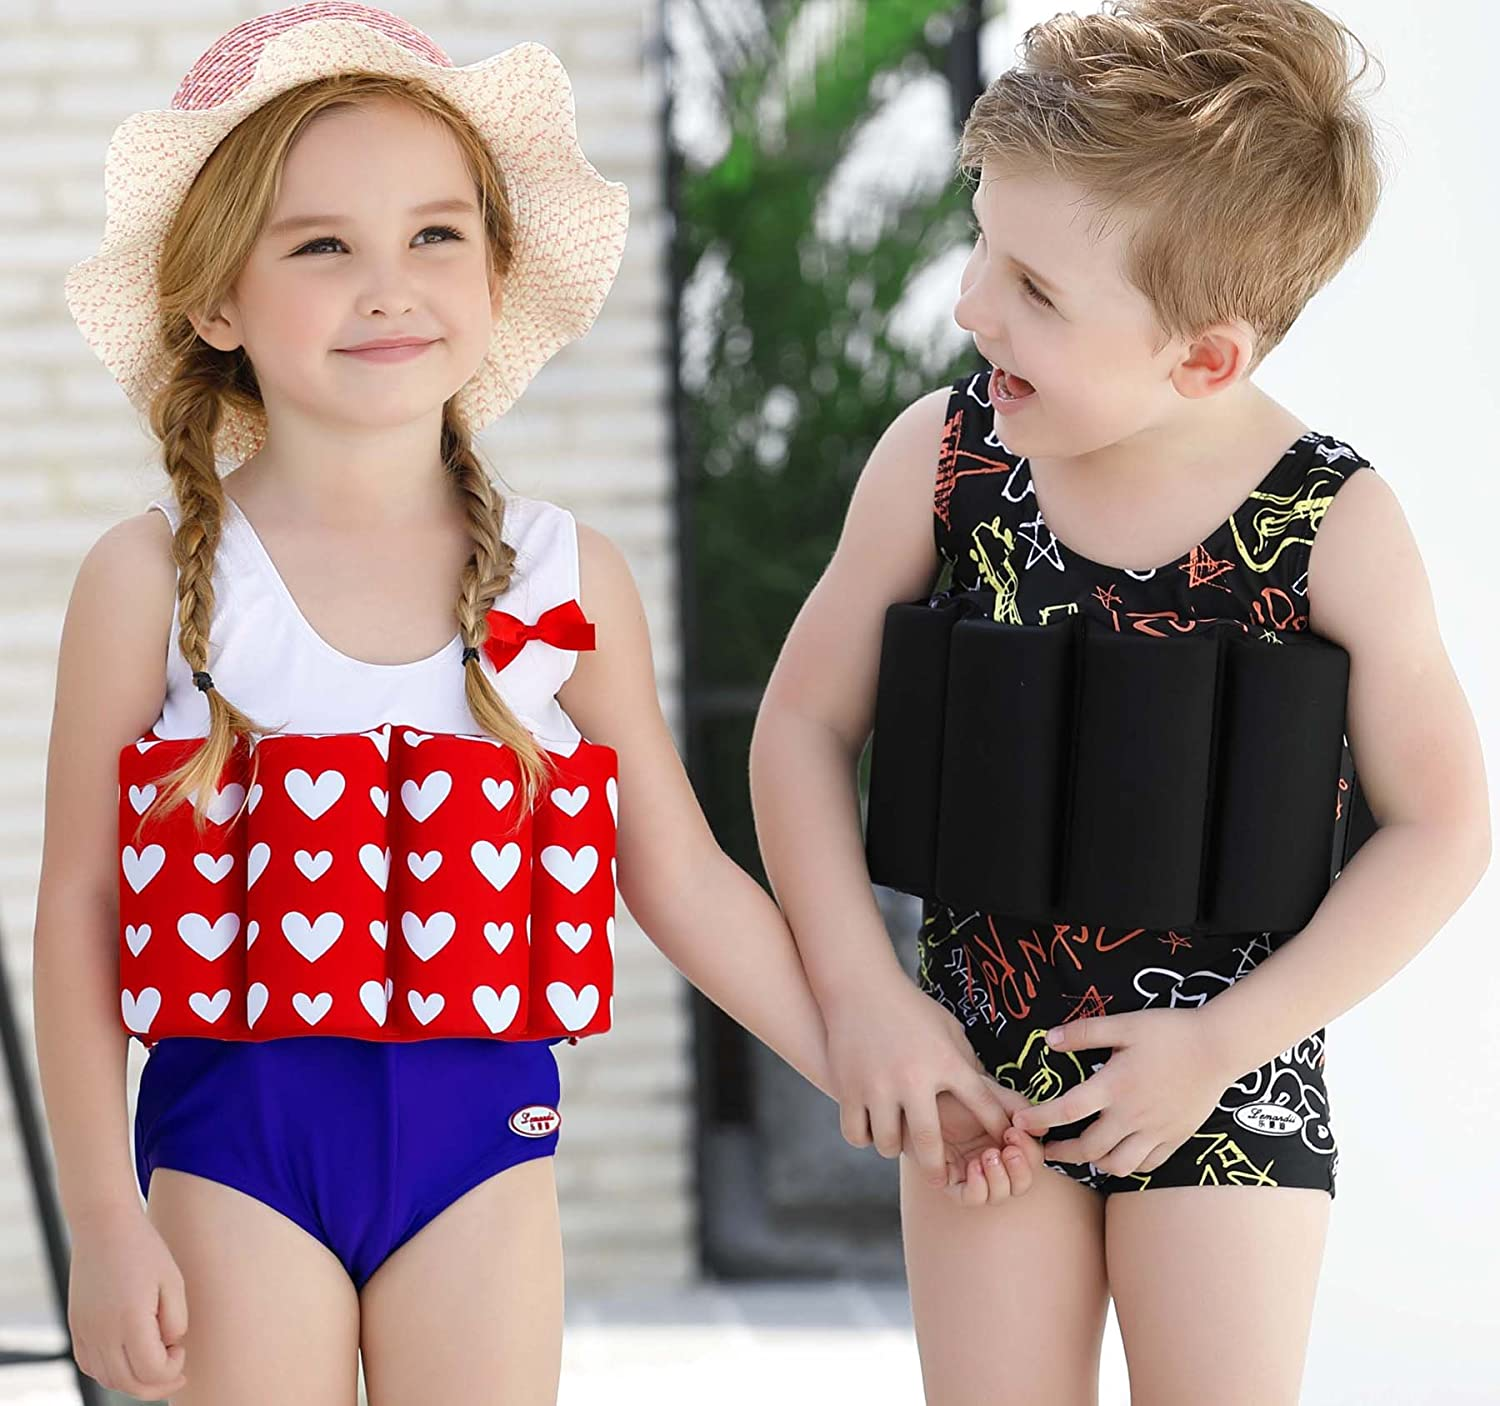 SGMWVB Cute Toddler Swimsuits Float Suit with Adjustable Buoyancy one Piece Swimwear Swimsuit for Boys and Girls